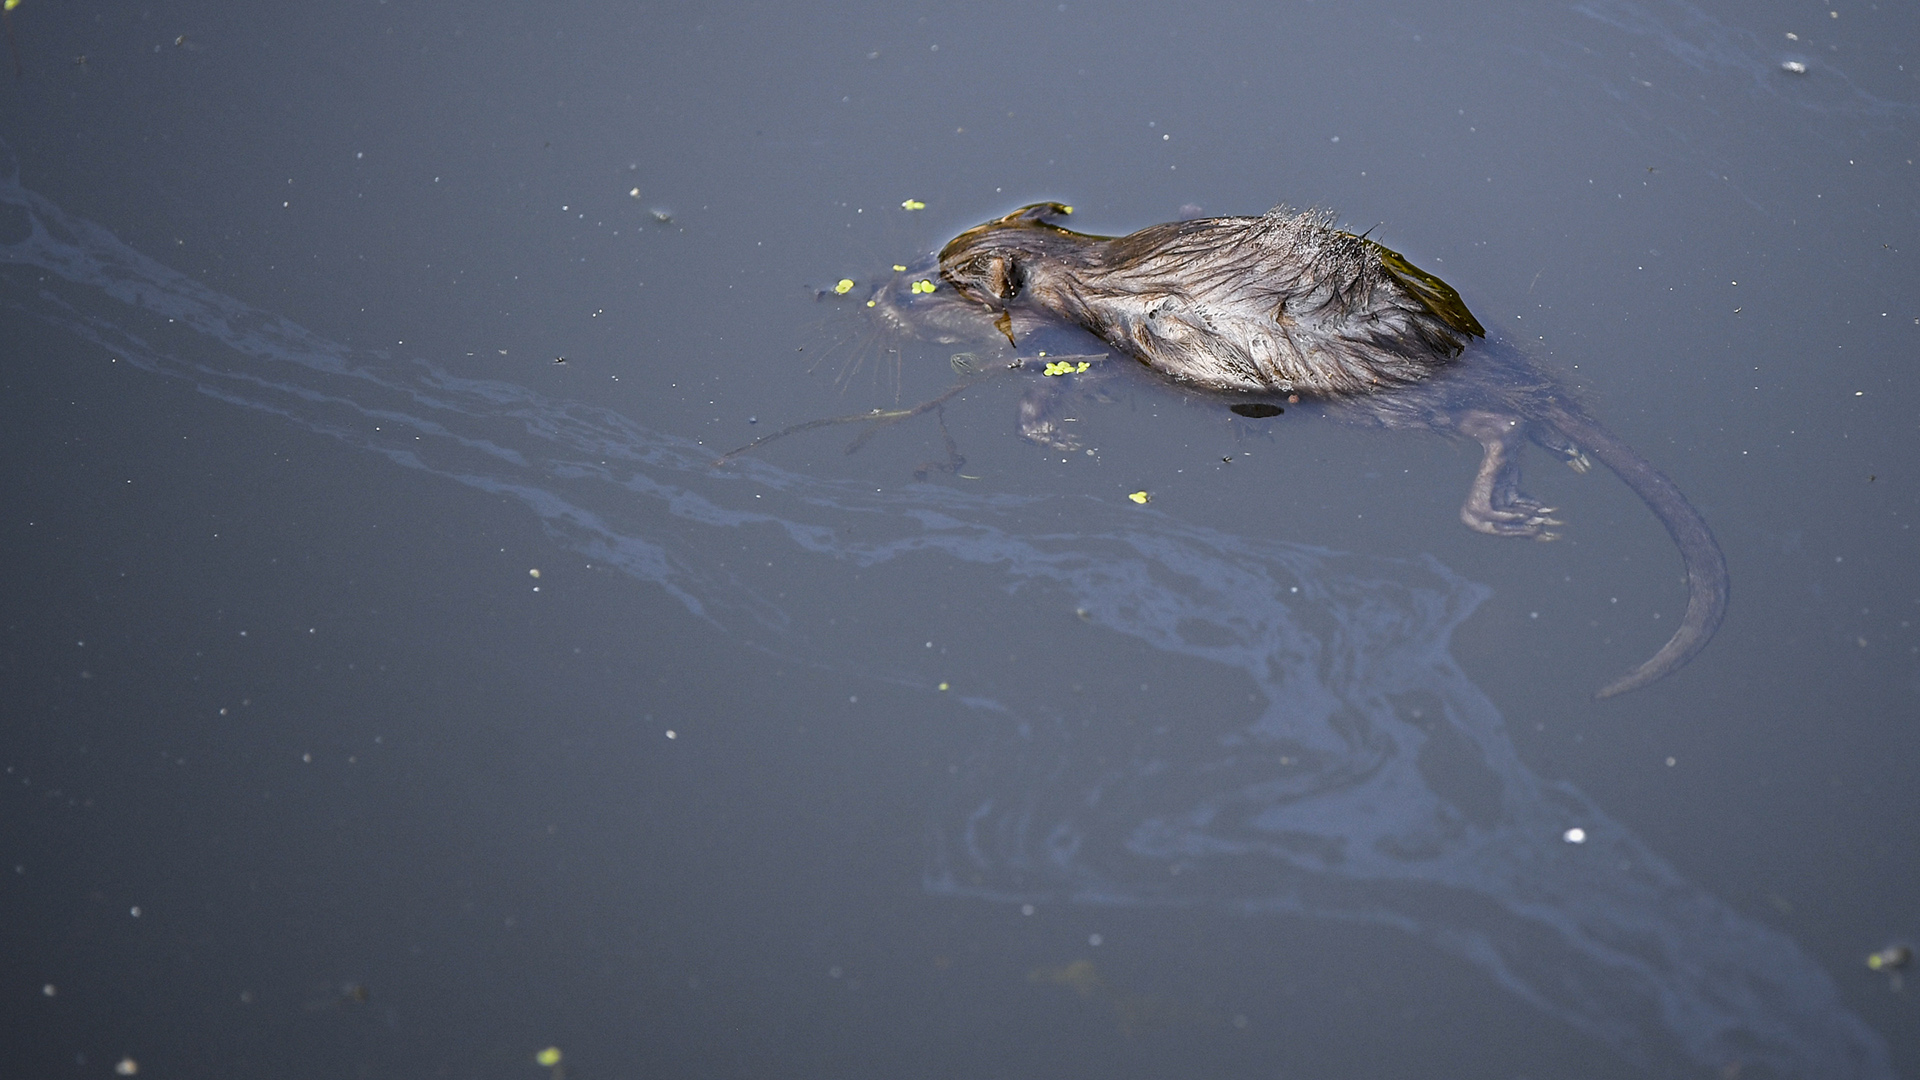 A dead rodent float in water topped by an oily sheen.